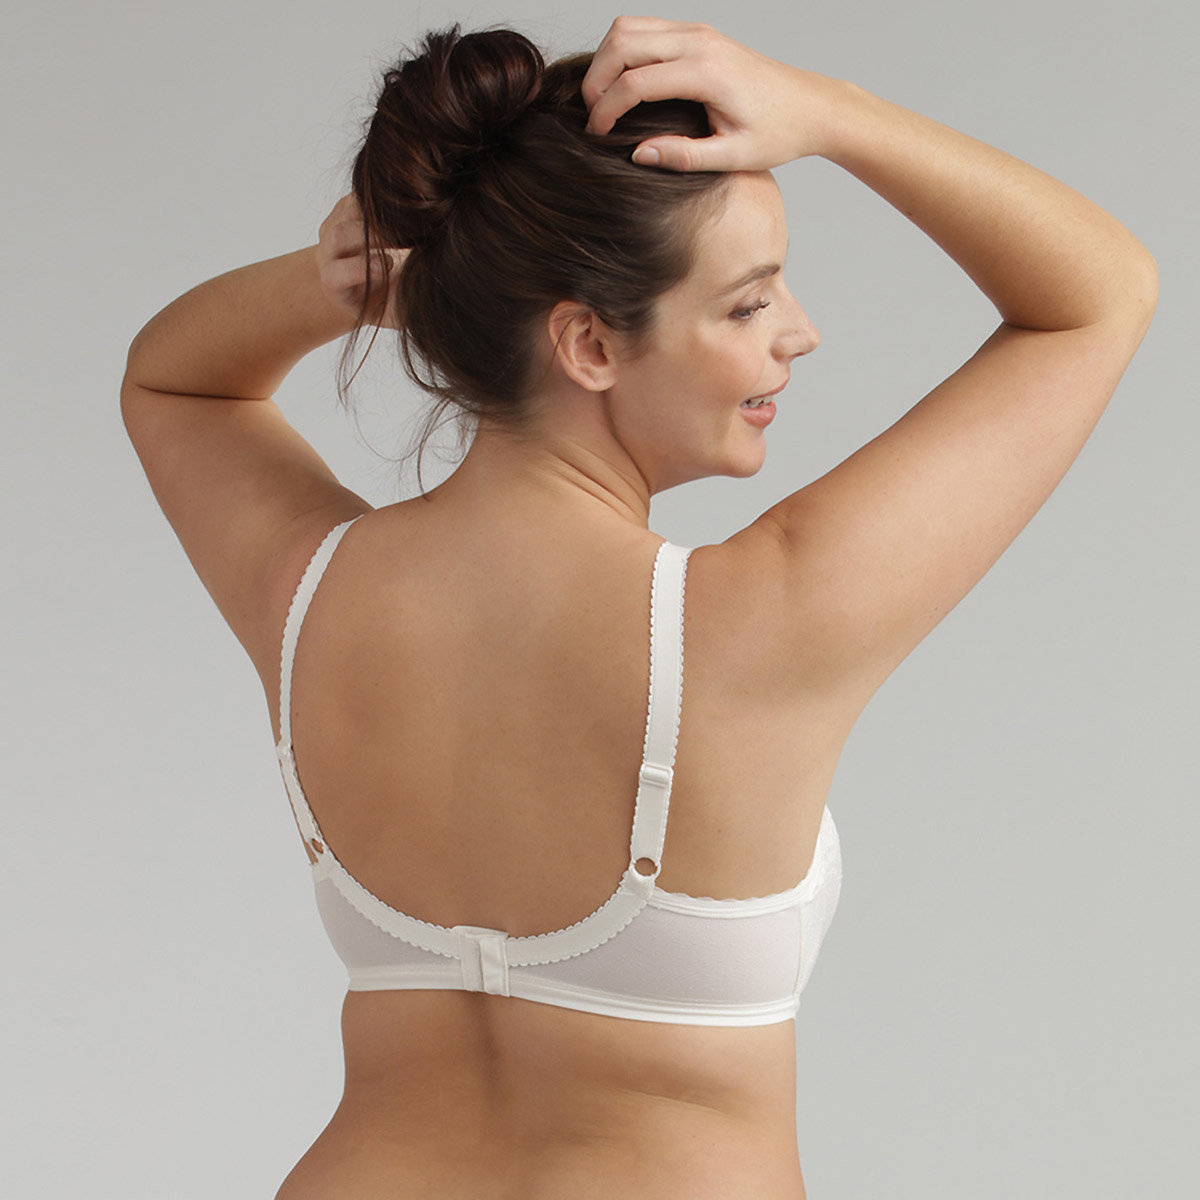 Sujetador con aros blanco Secret Comfort, , PLAYTEX